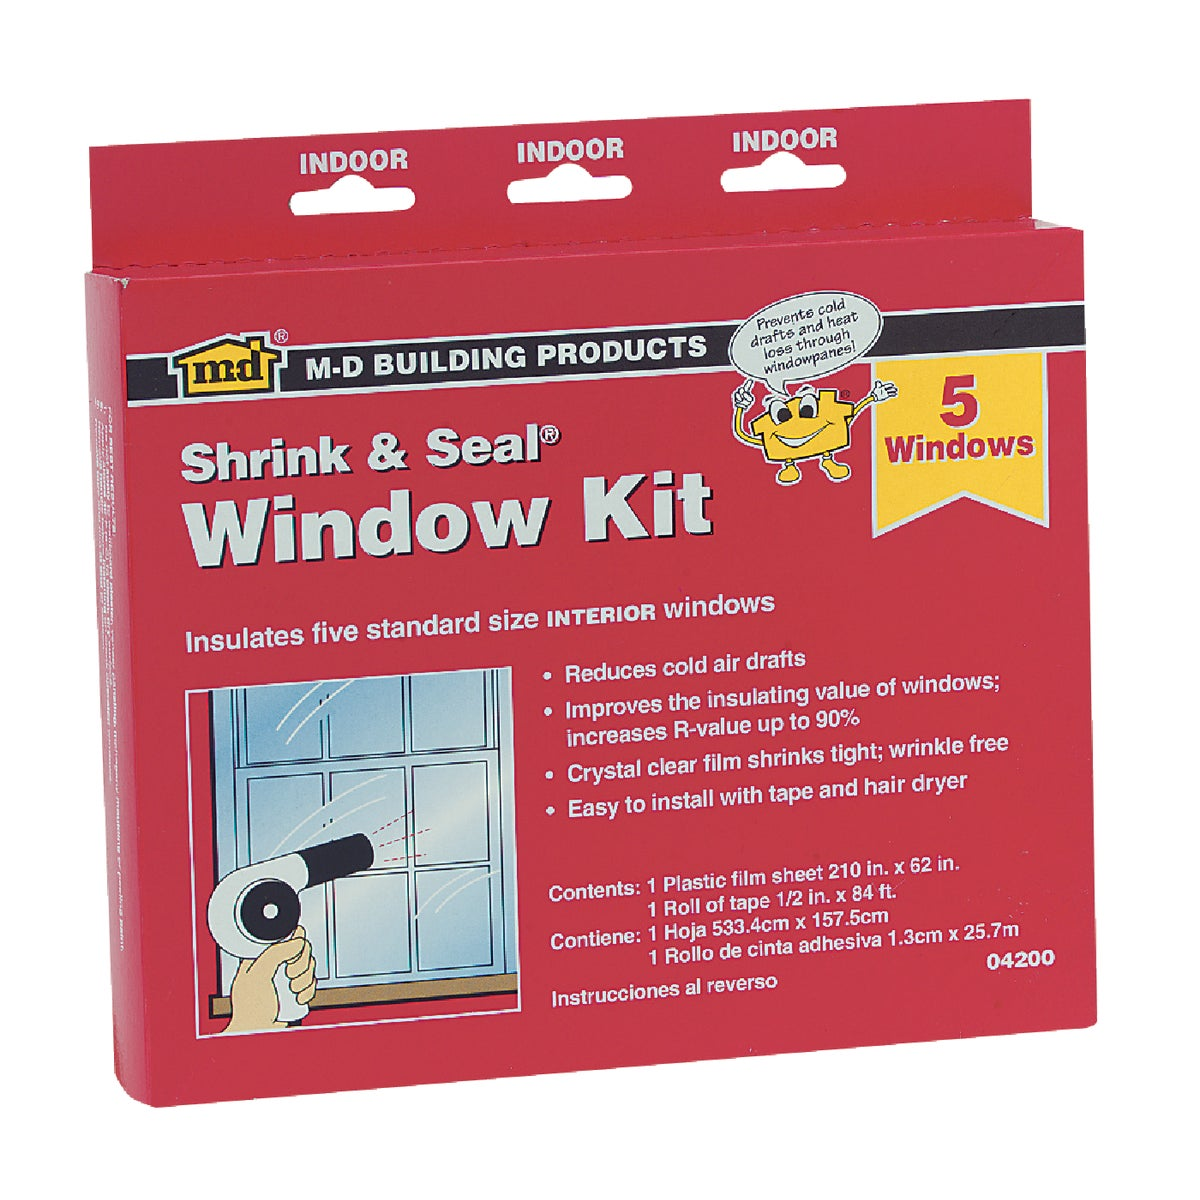 SHRINK&SEAL 5-WINDOW KIT - 04200 by M D Building Prod